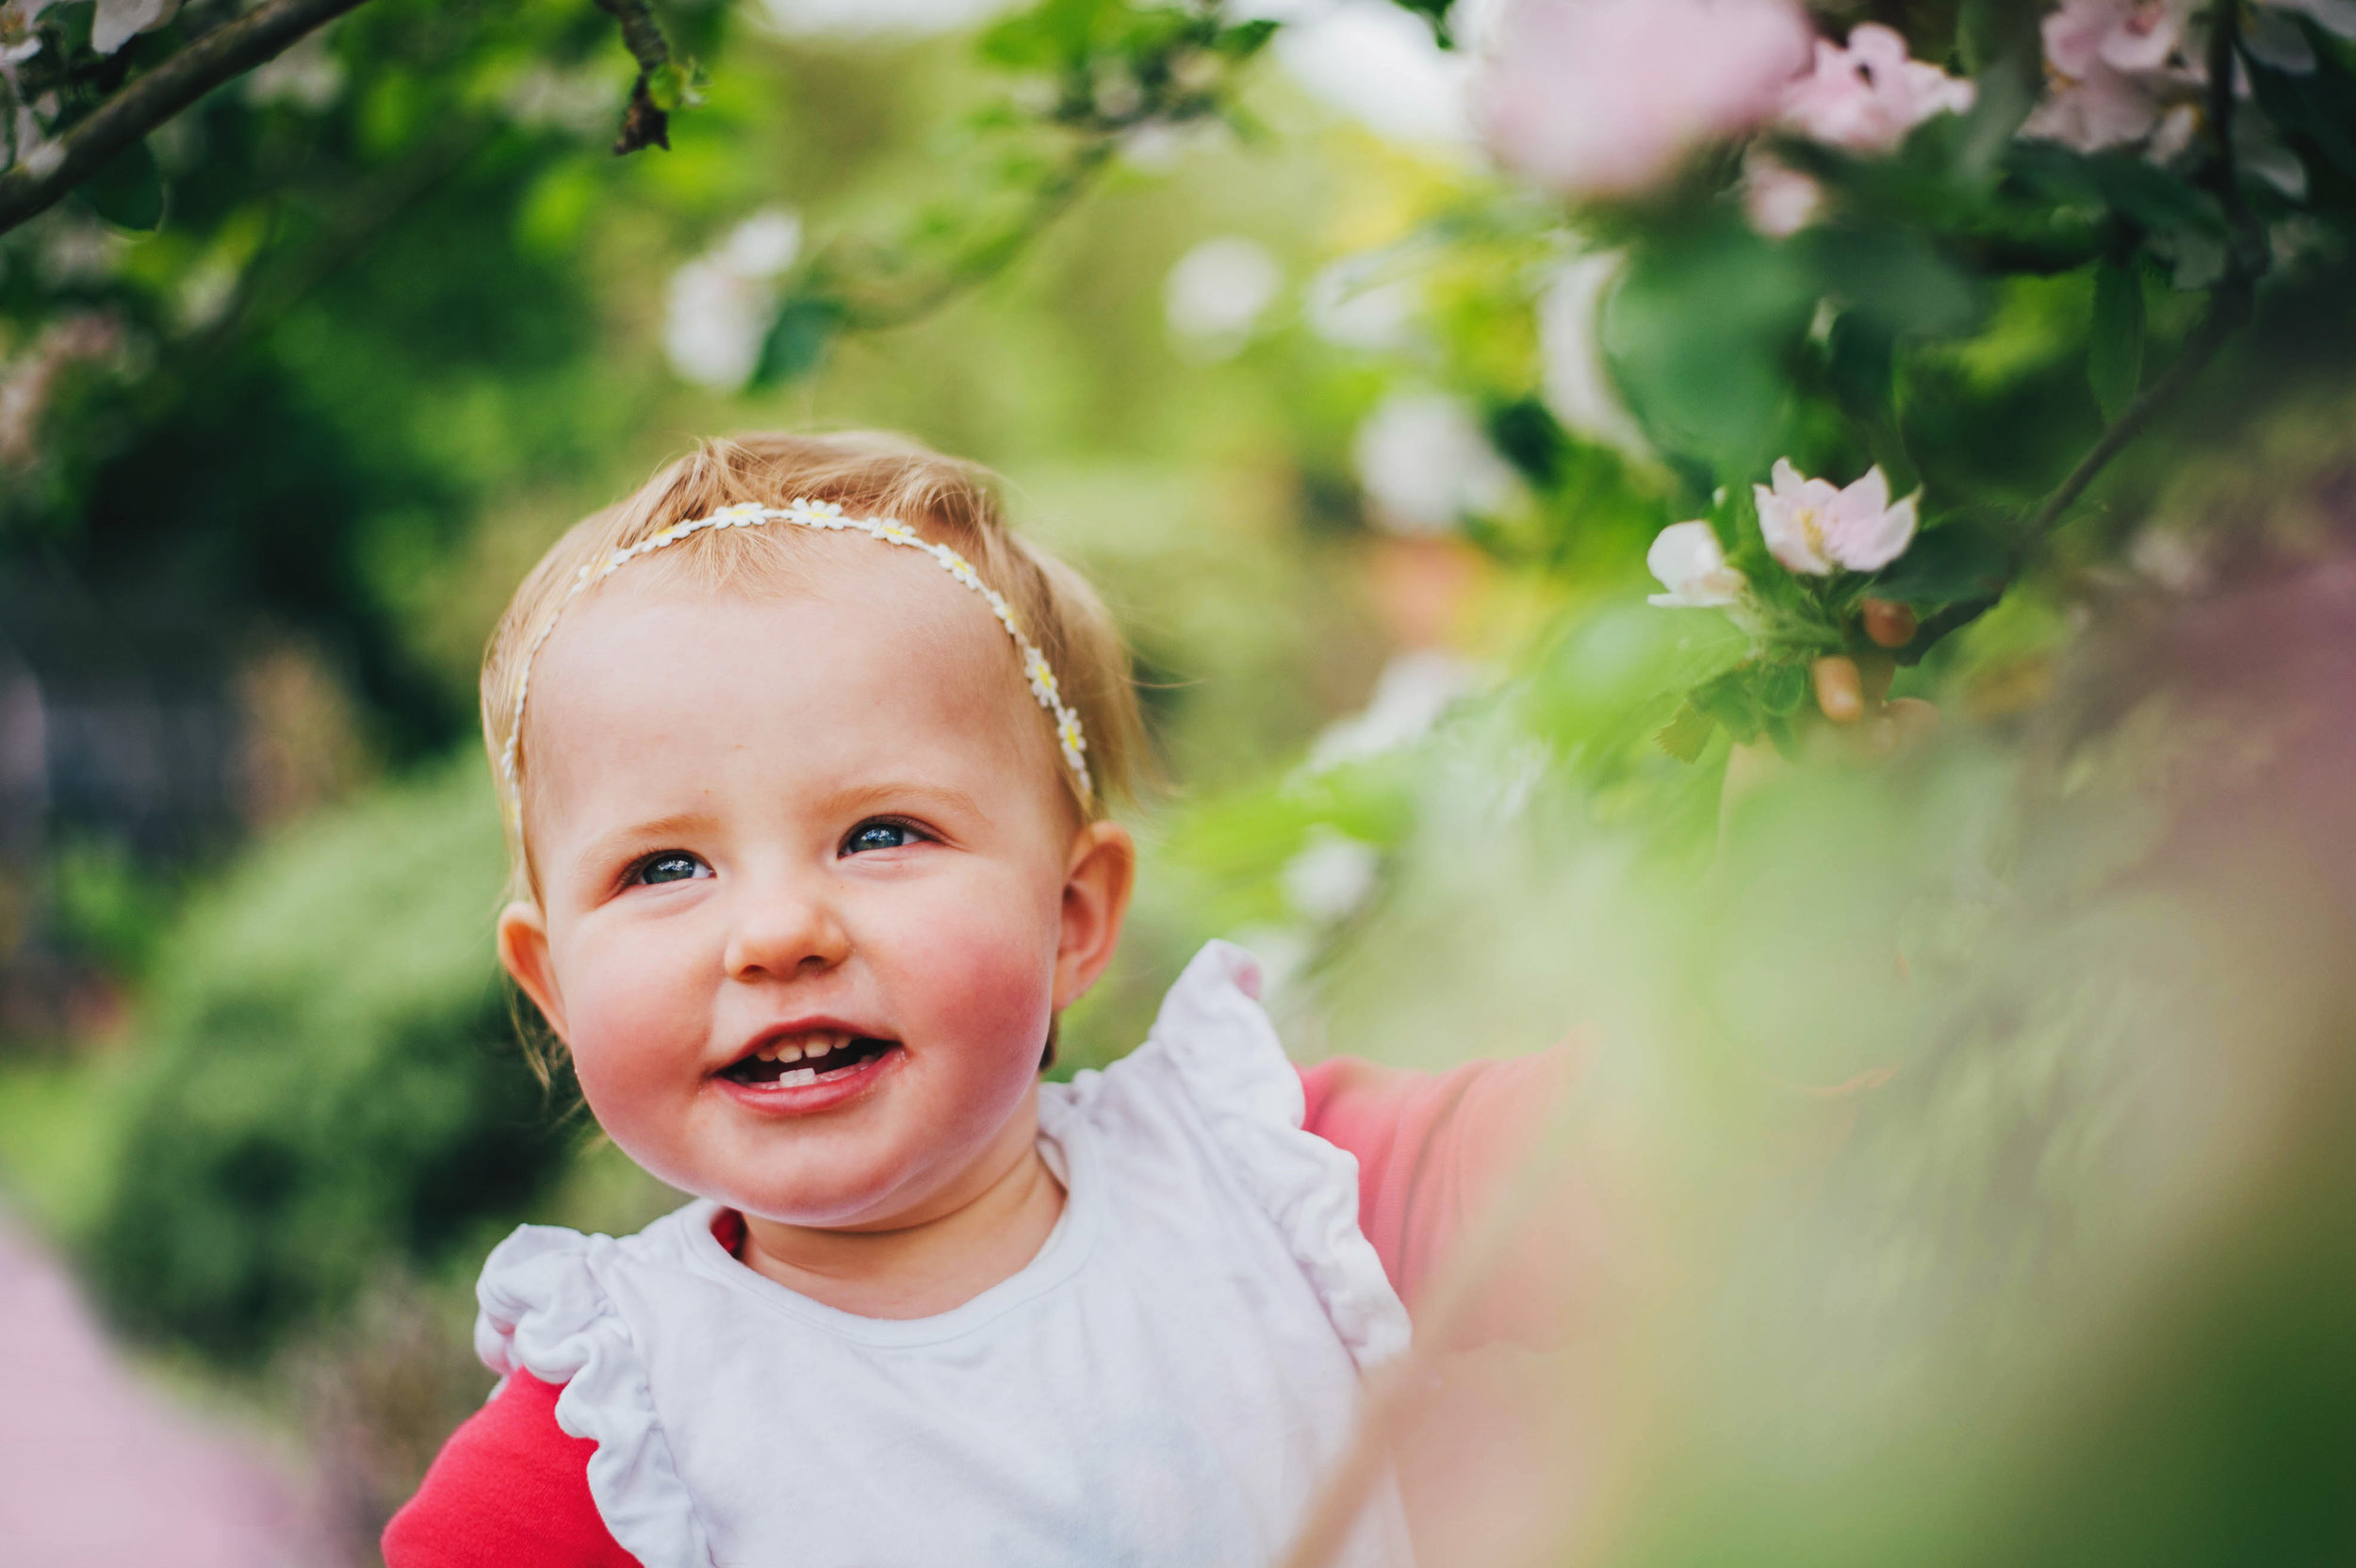 baby girl in blossom tree essex uk documentary family childhood lifestyle photographerw